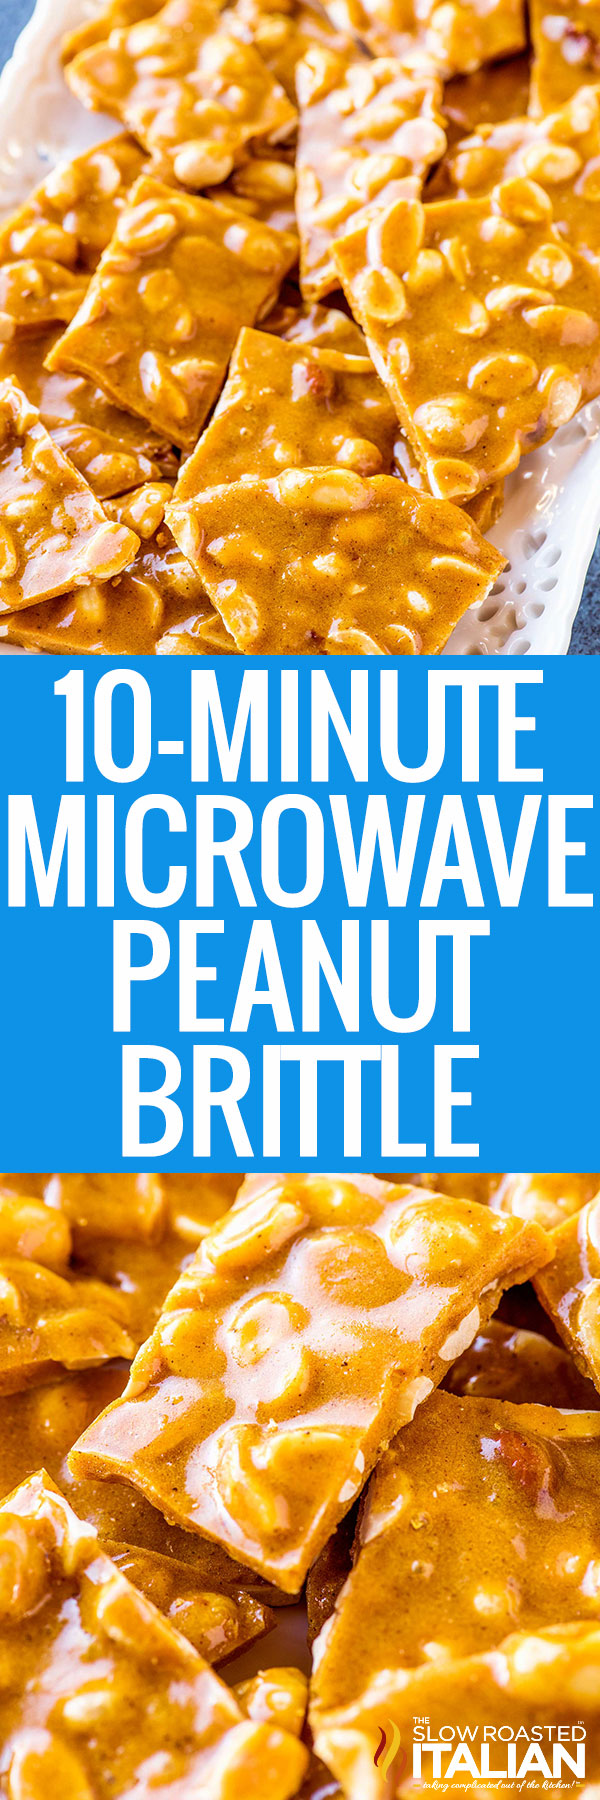 titled photo collage (and shown): 10 Minute Microwave Peanut Brittle